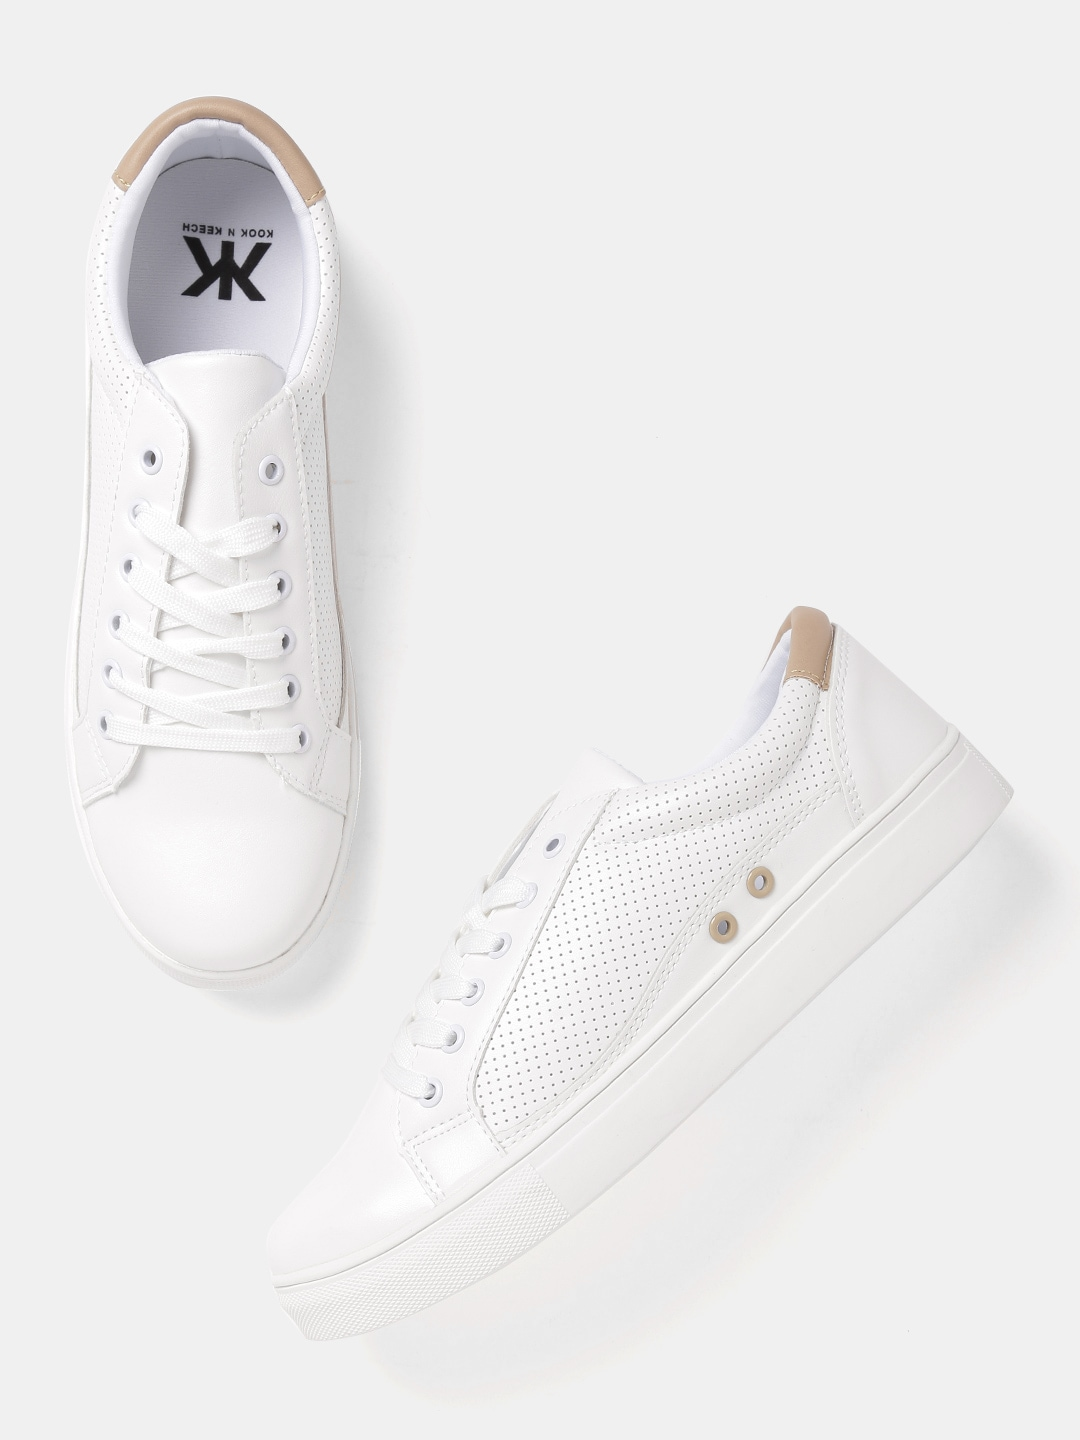 5fee64cfb27d Women White Shoes - Buy Women White Shoes online in India